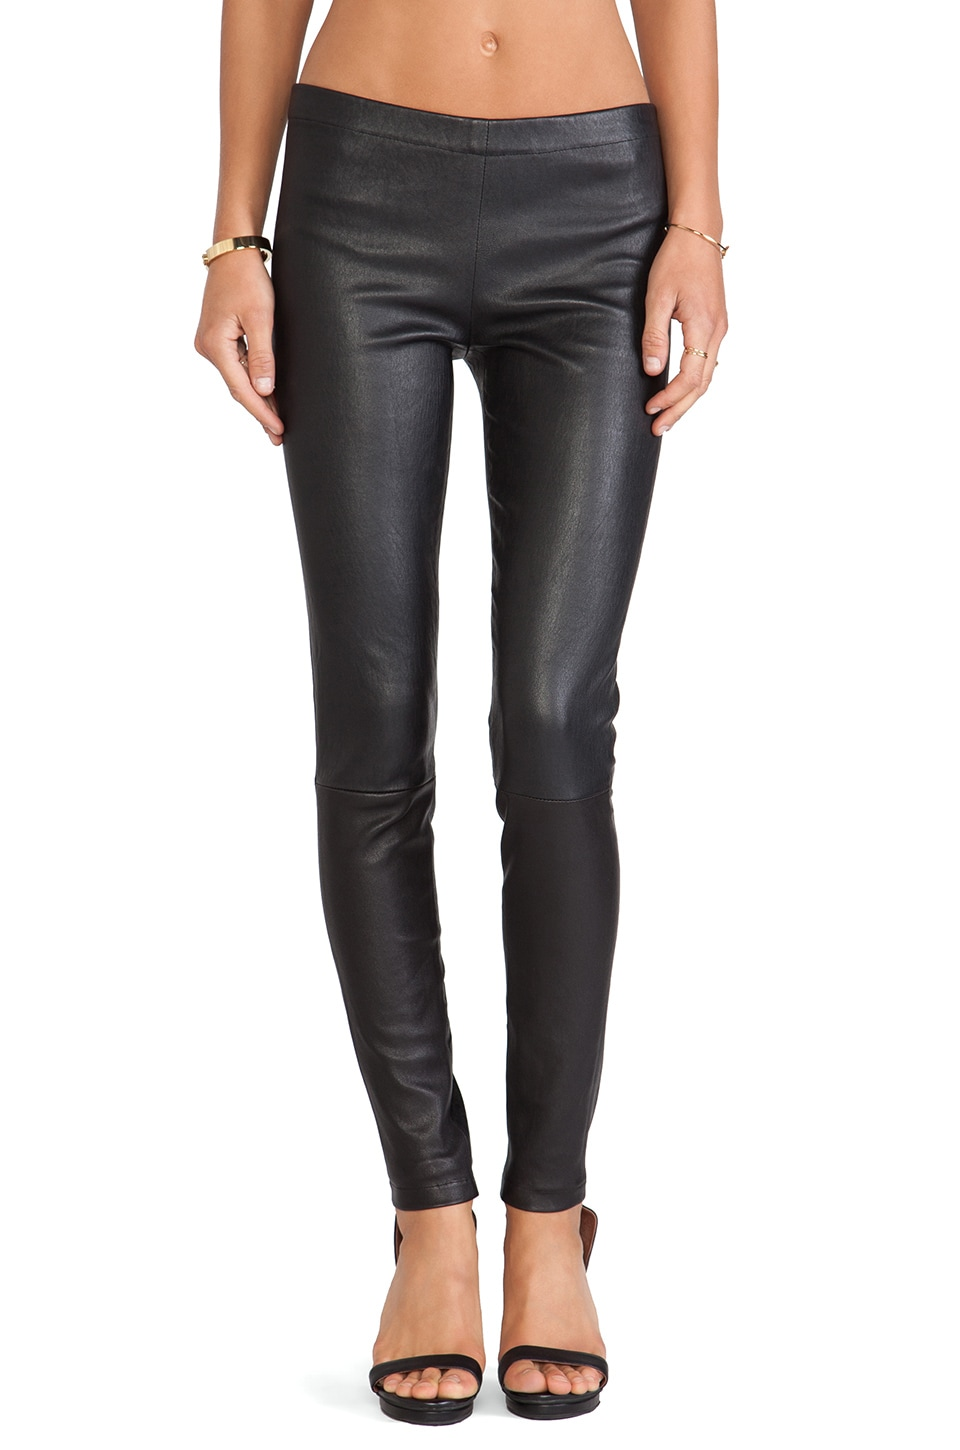 LAMARQUE Winnie Seamed Leather Legging in Black